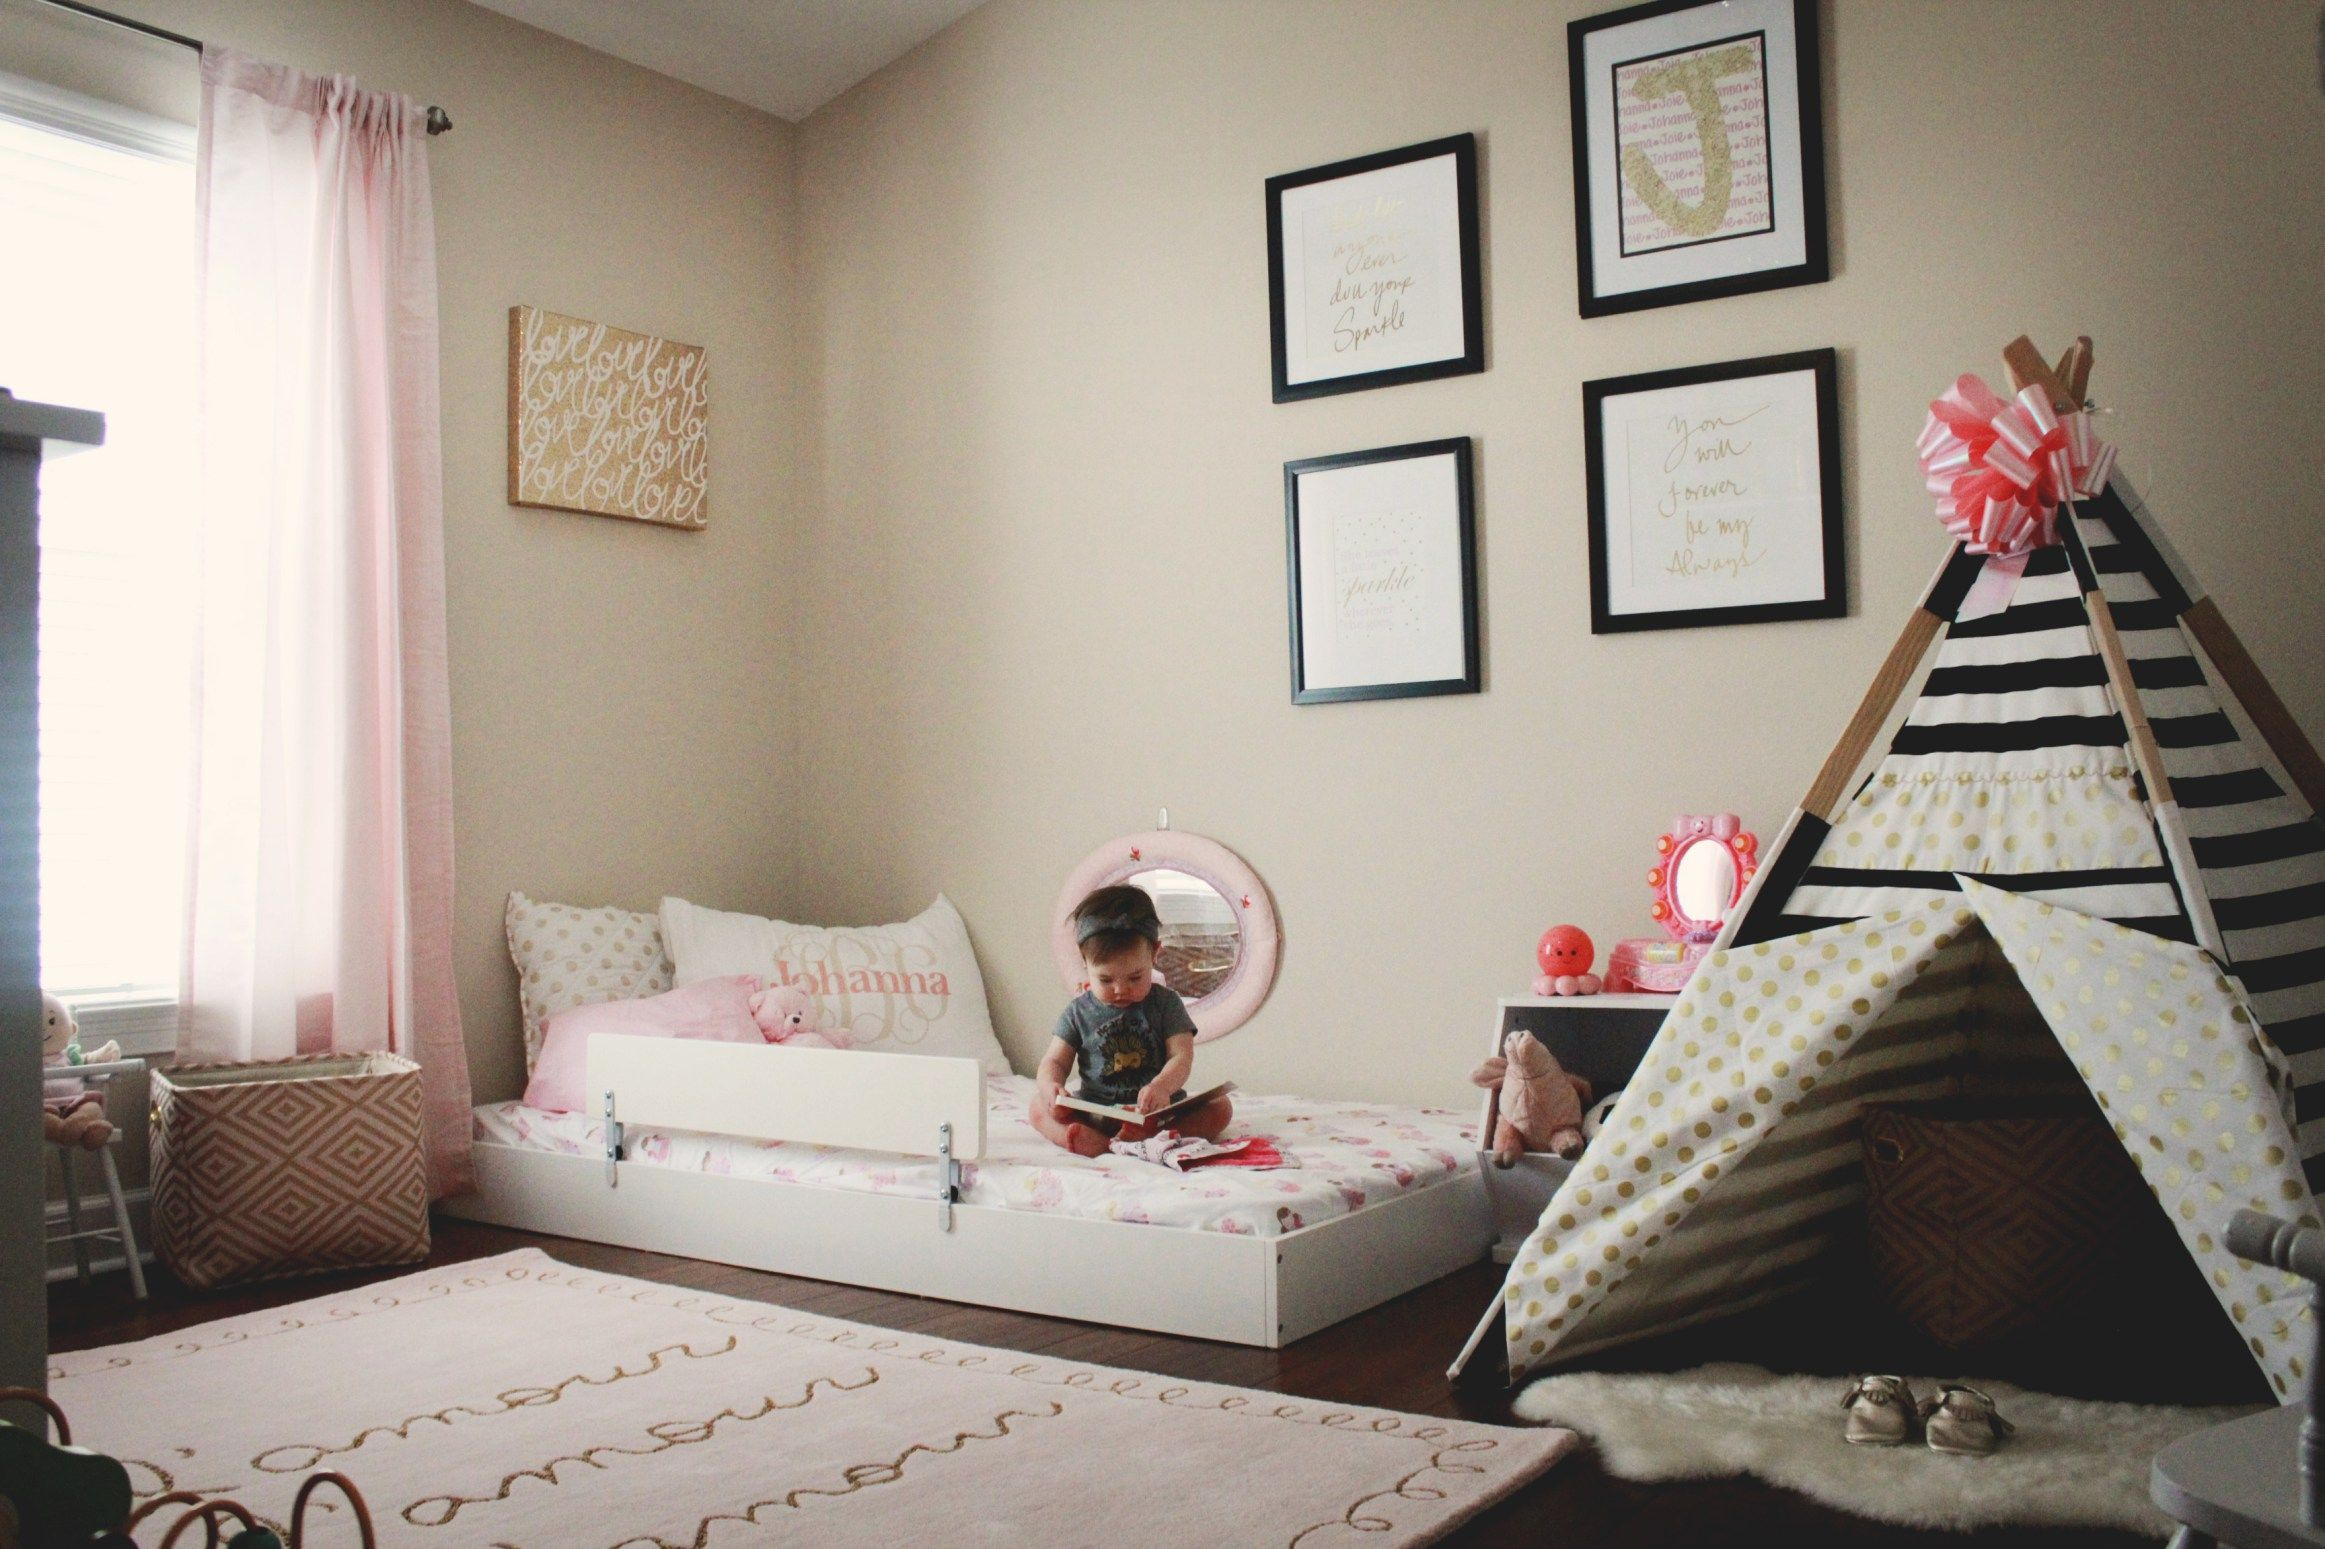 Montessori Floor Toddler bed | nursery | Pinterest | Toddler bed ...